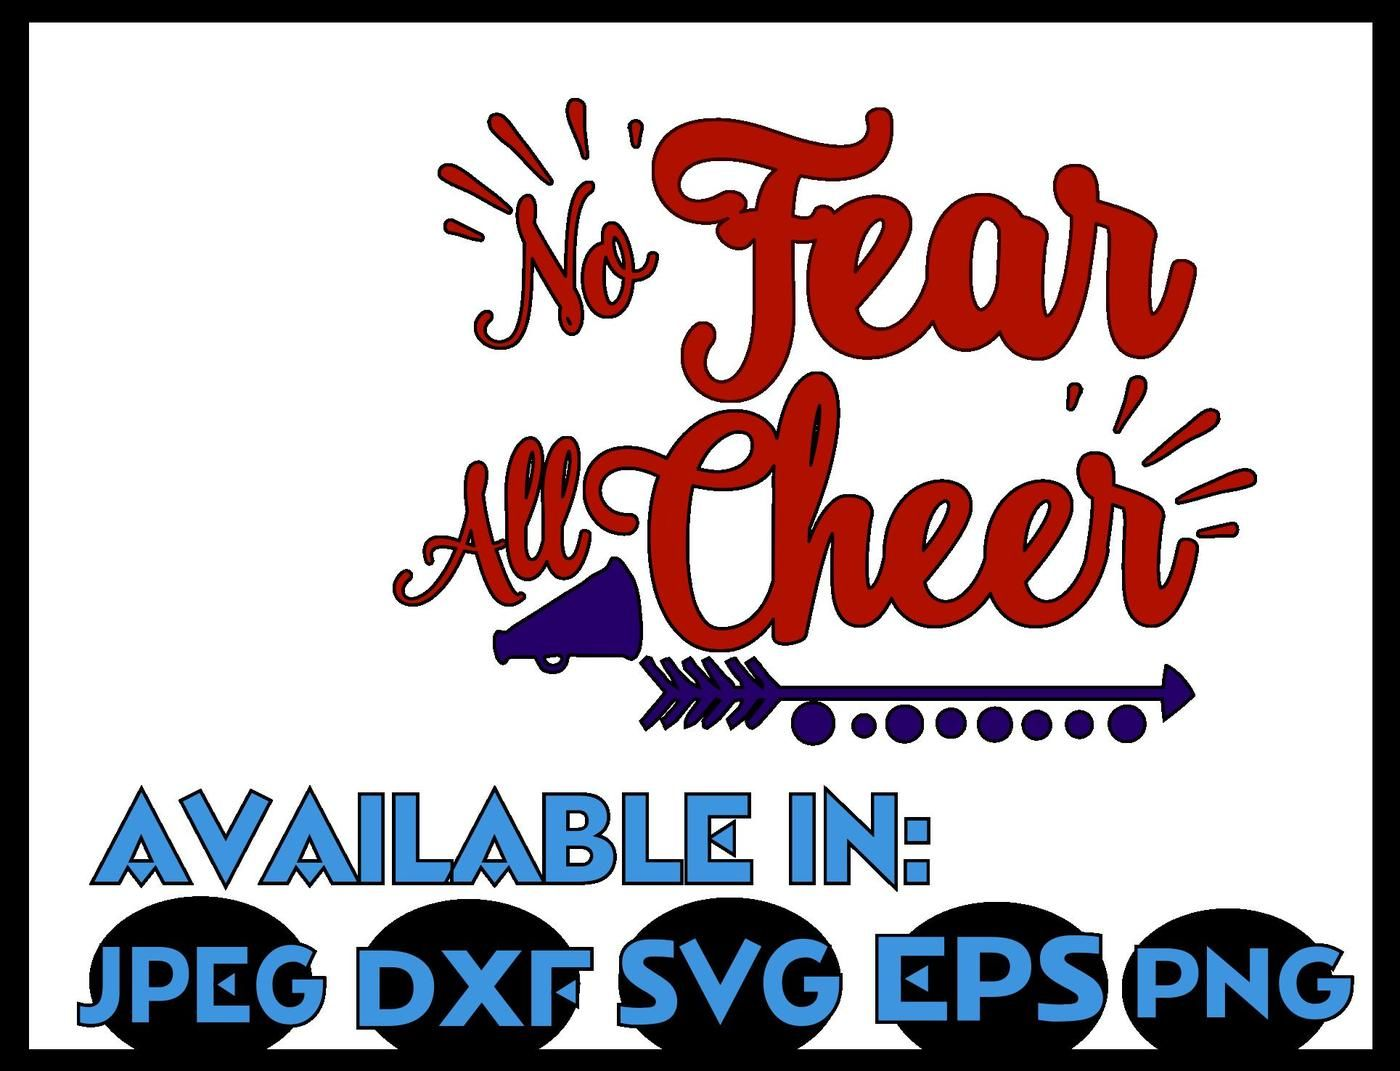 Cheer Svg Dxf Jpeg Silhouette Cameo Cricut Cheerleader Iron On No